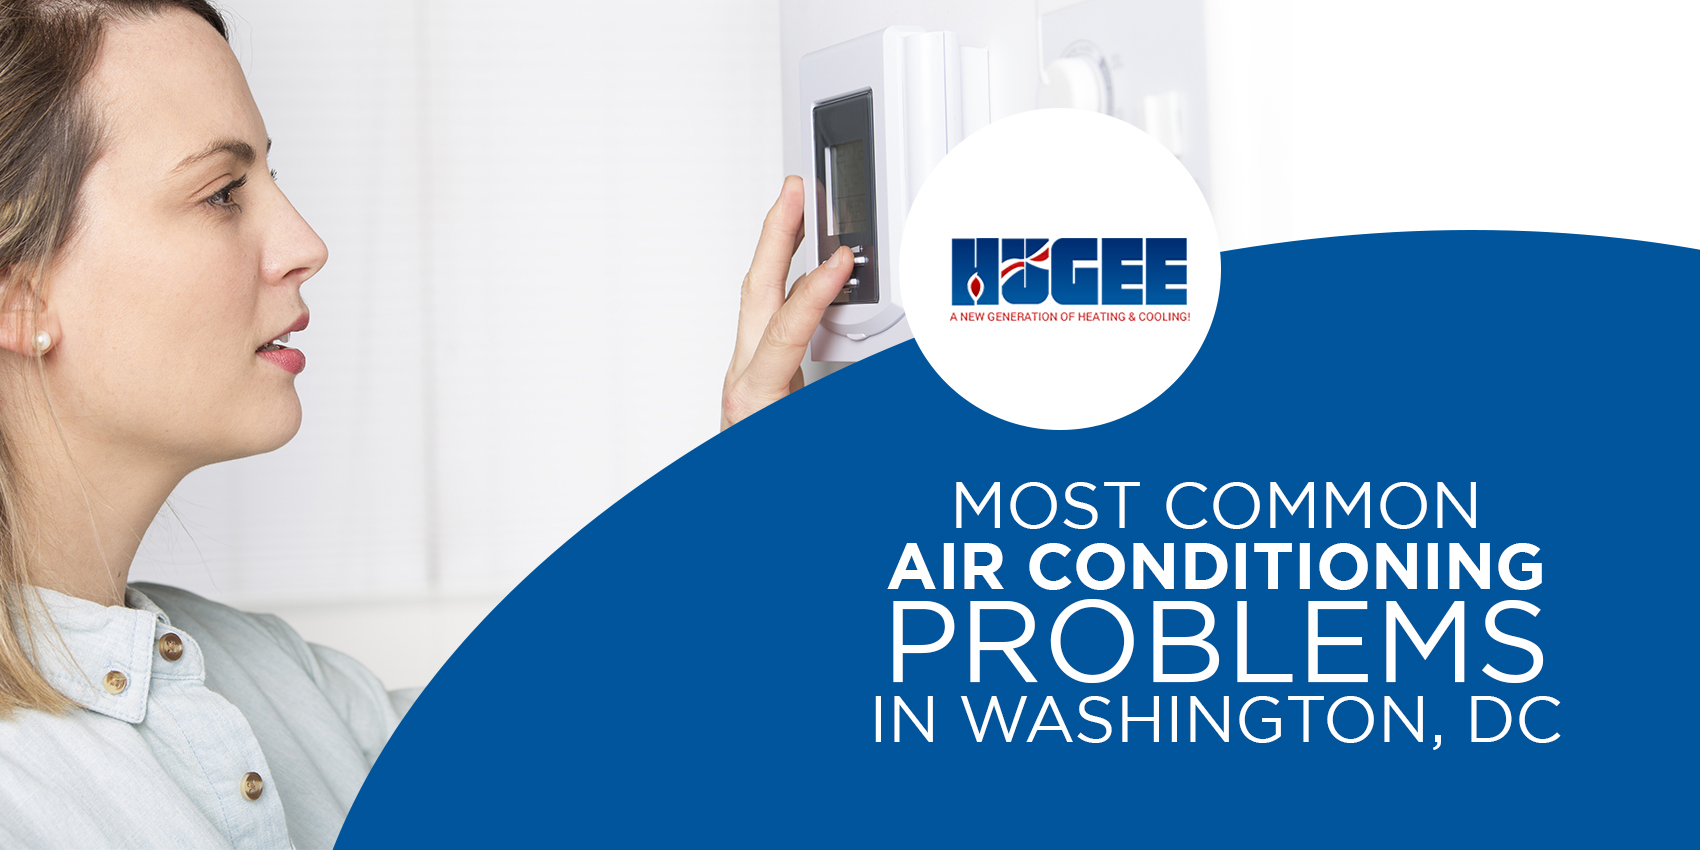 Most Common Air Conditioning Problems in Washington, DC